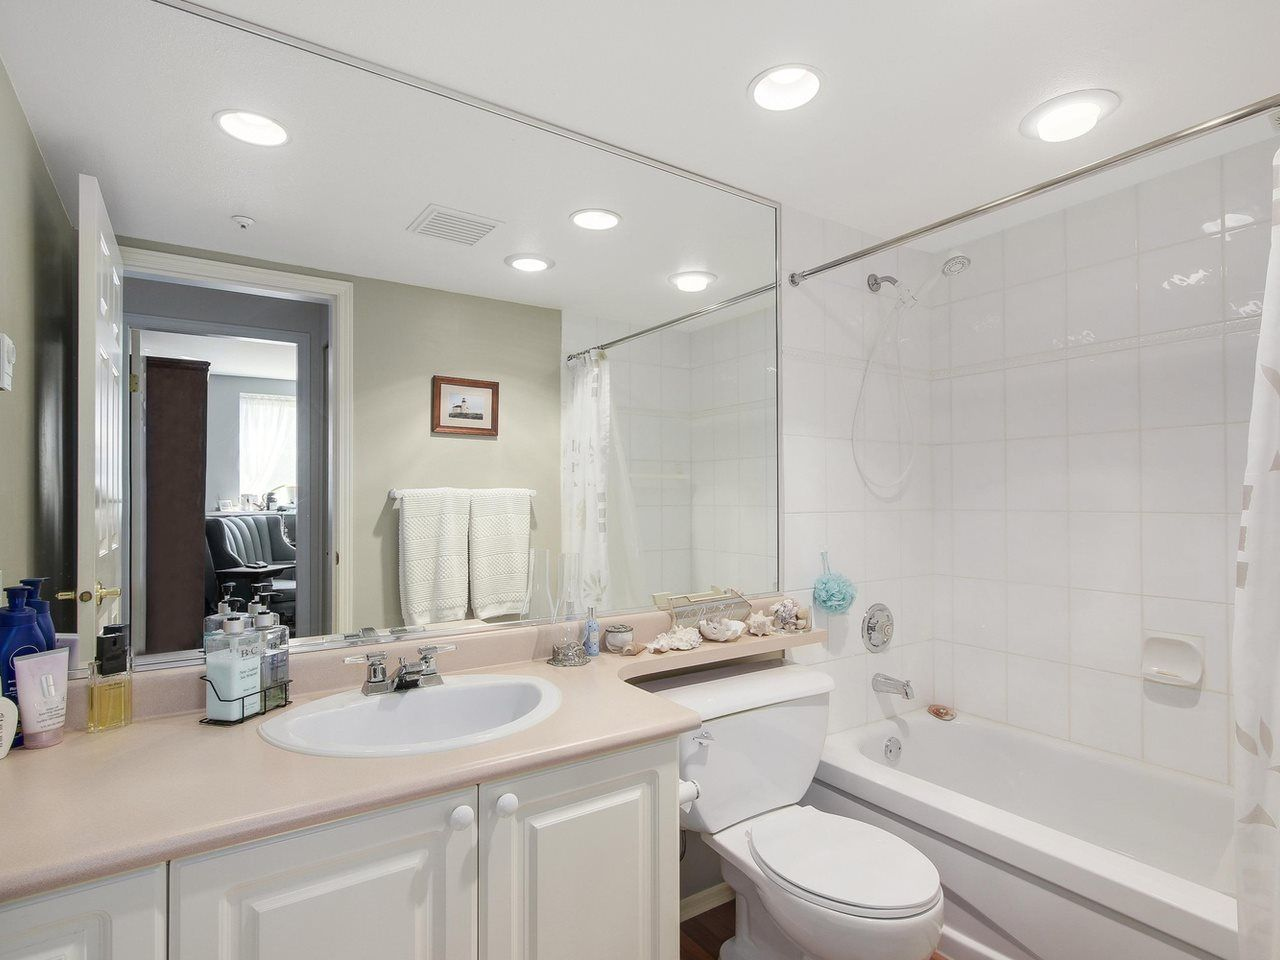 """Photo 10: Photos: 209 1575 BEST Street: White Rock Condo for sale in """"THE EMBASSY"""" (South Surrey White Rock)  : MLS®# R2151526"""